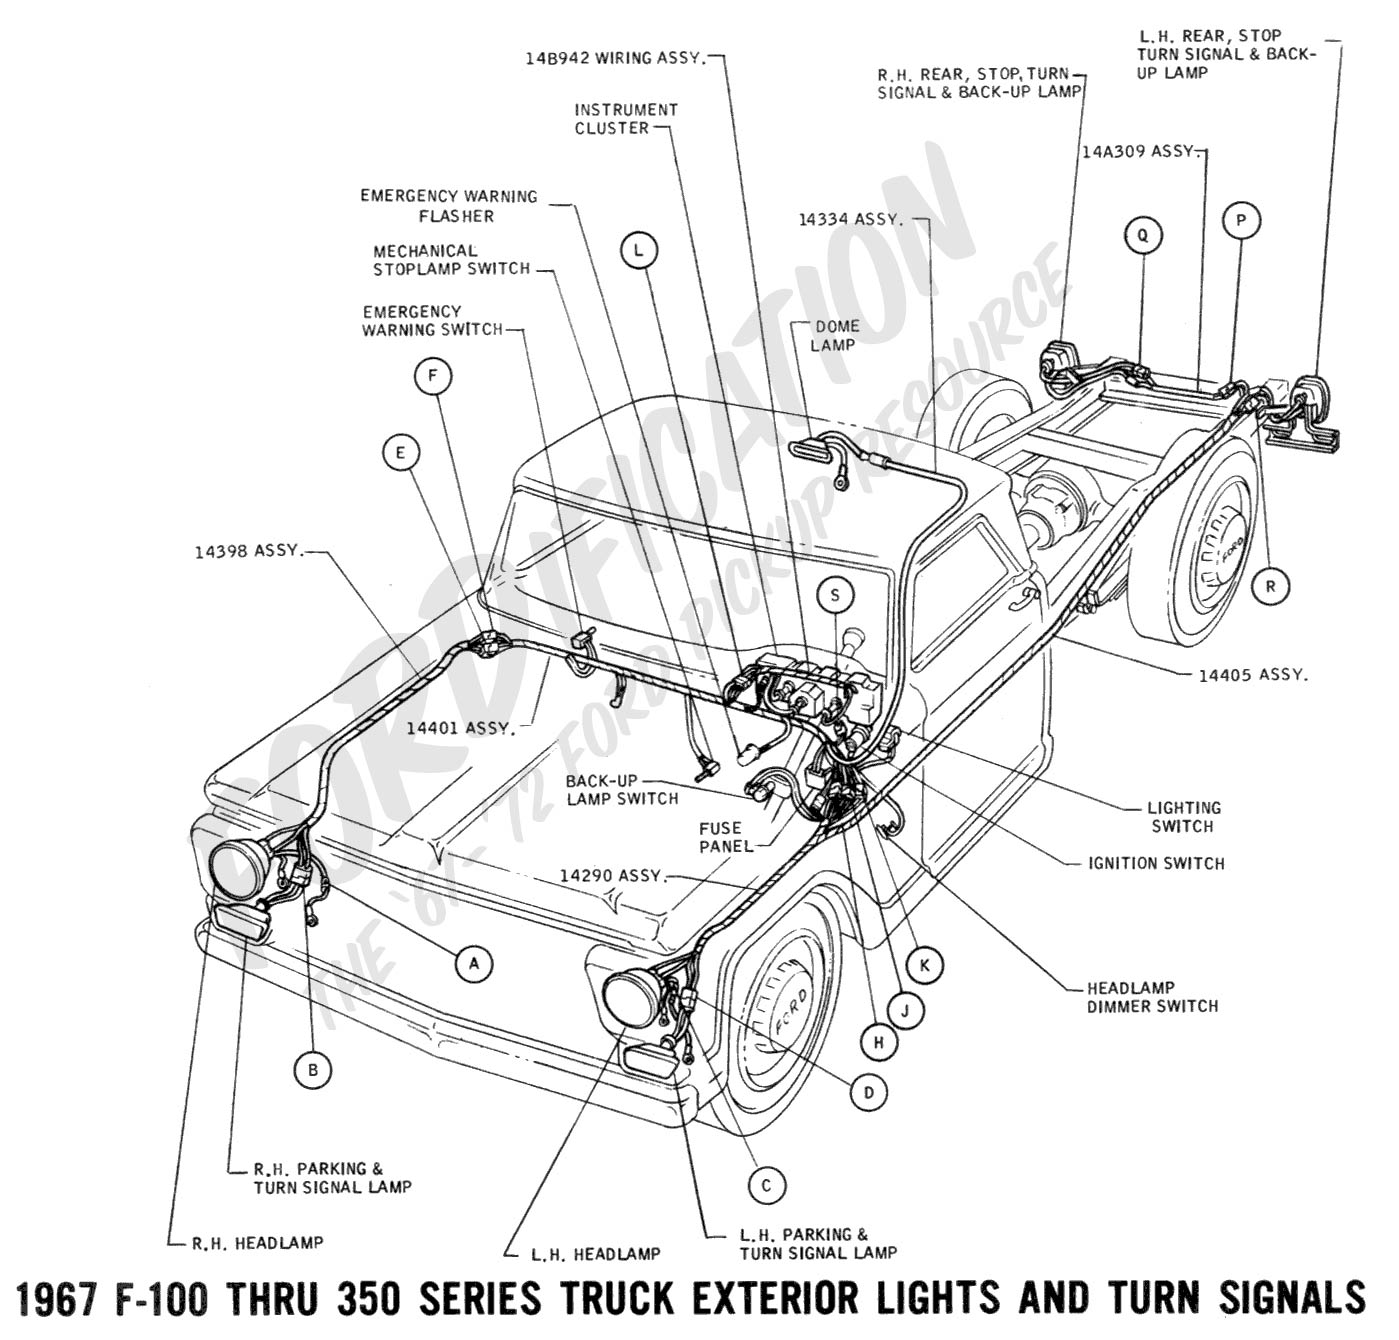 1994 ford f150 tail light wiring diagram   40 wiring diagram images